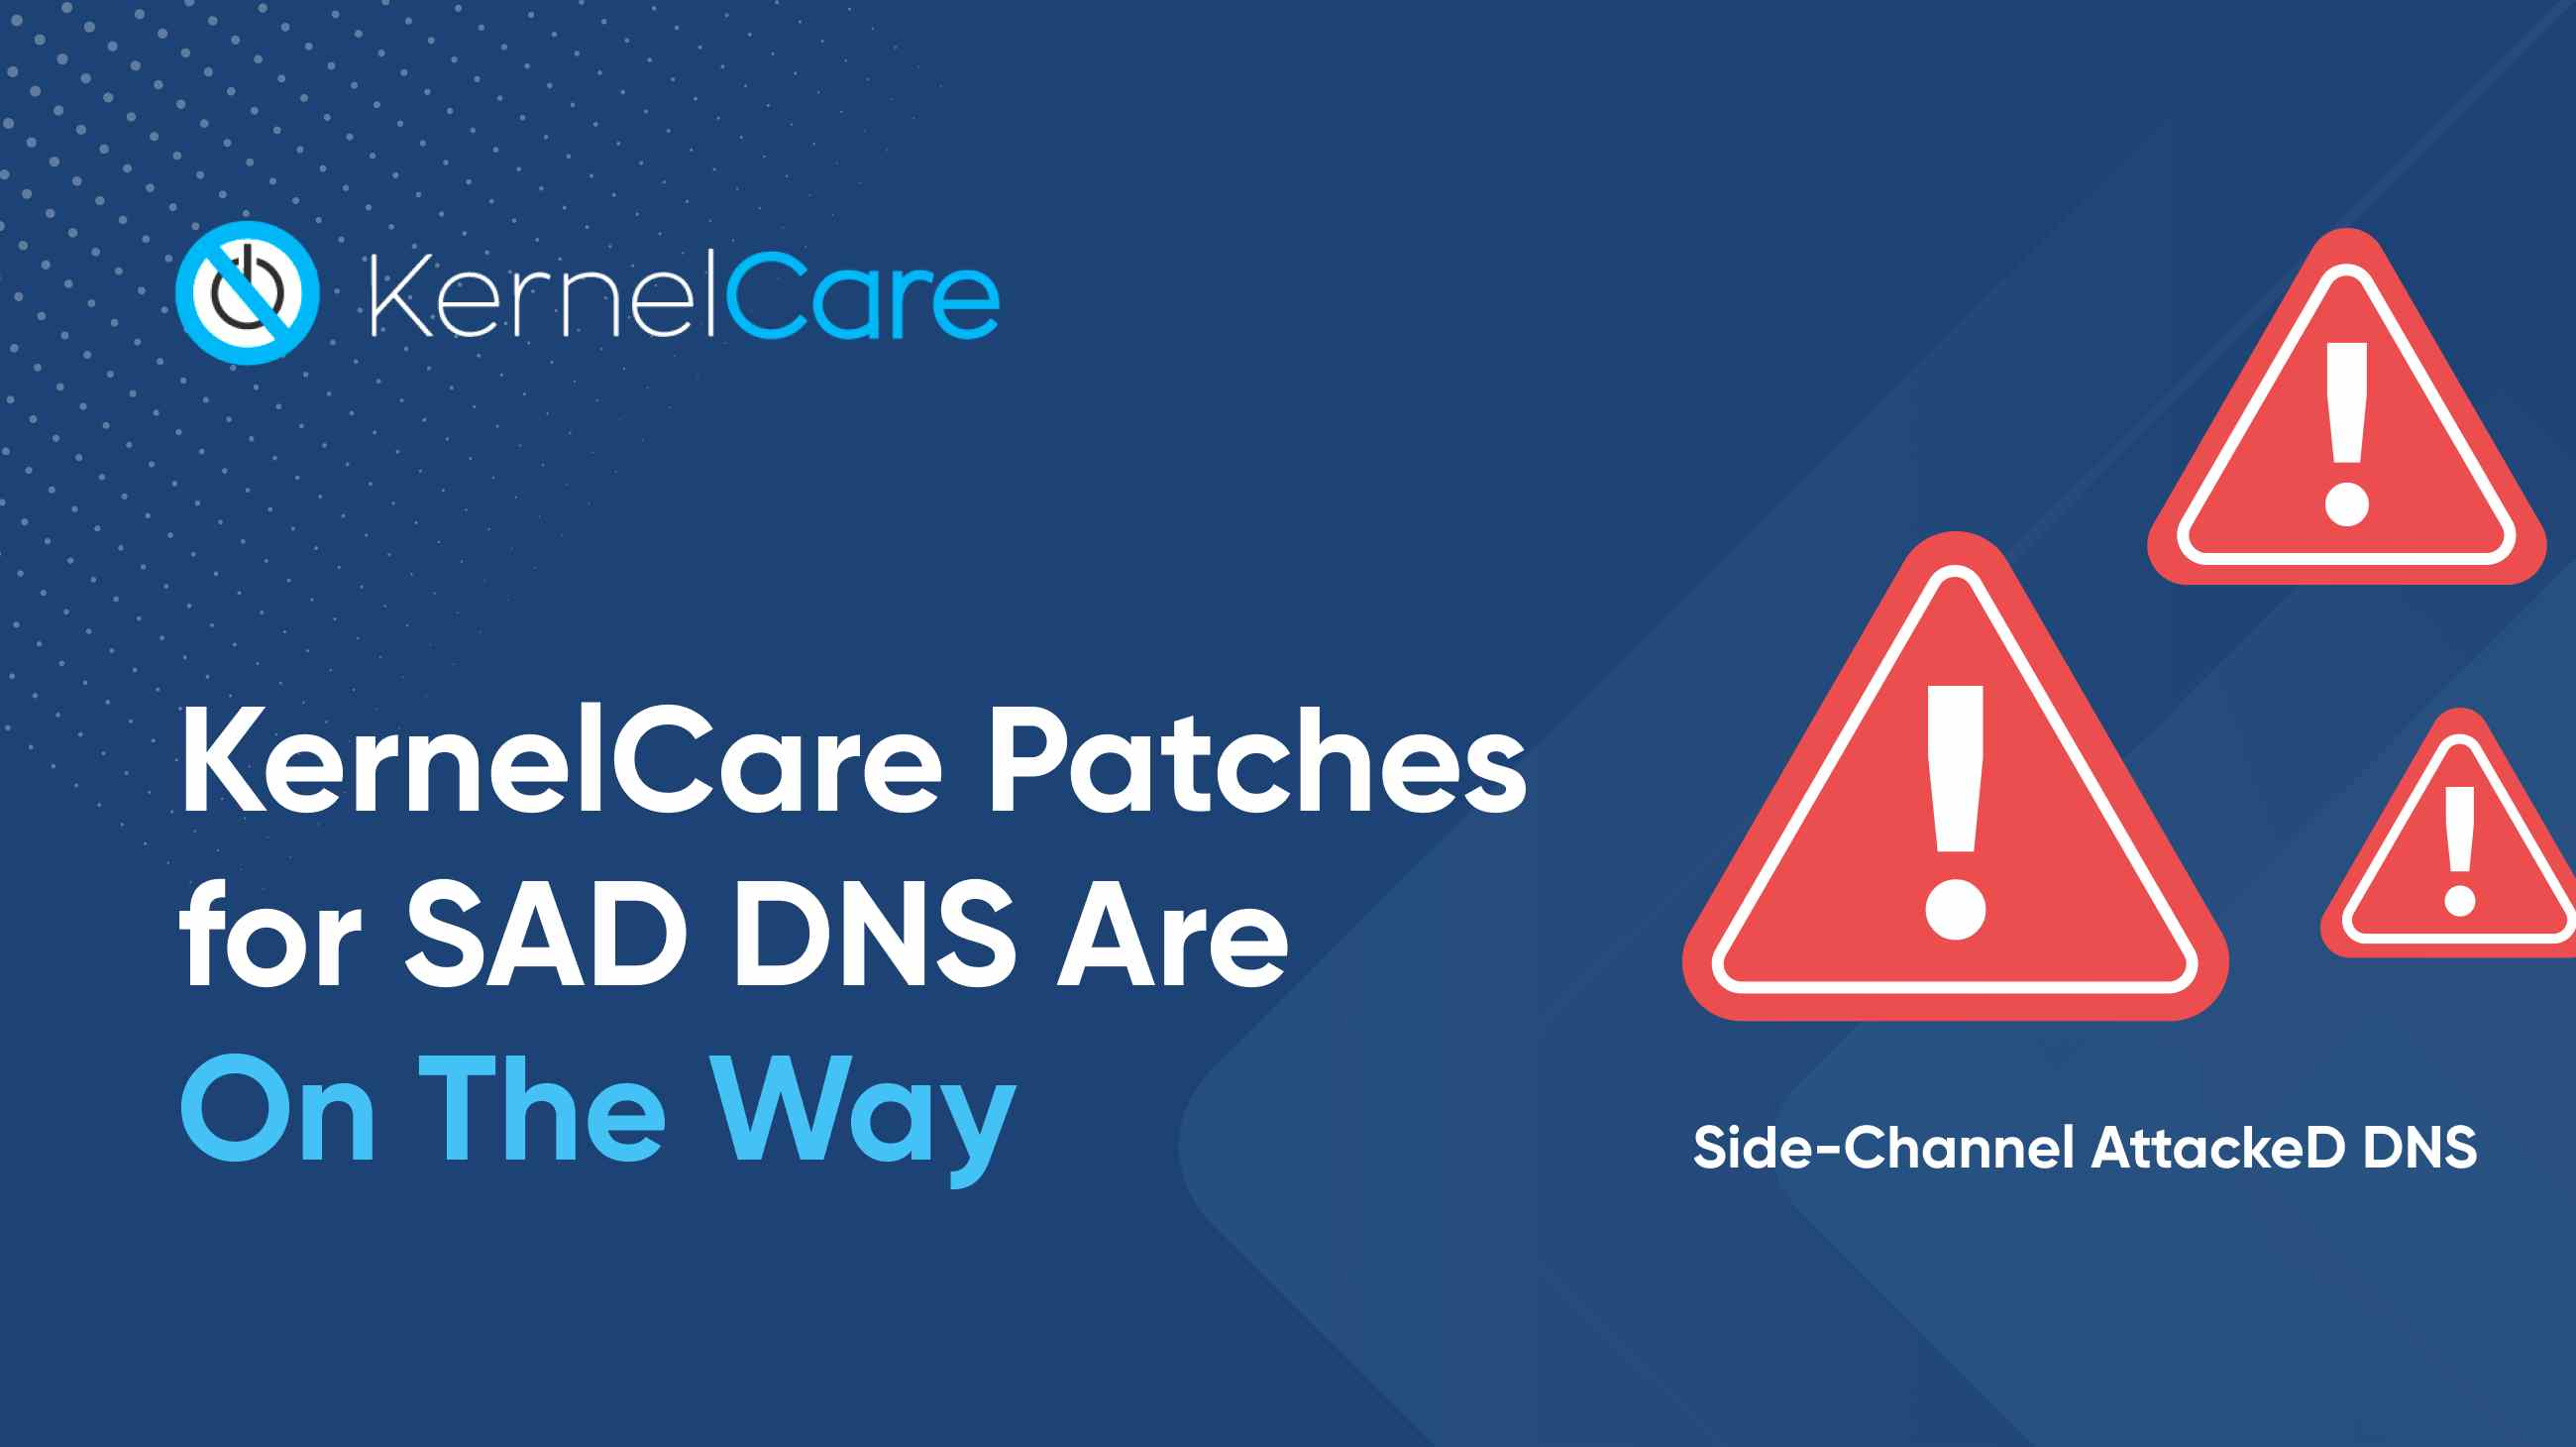 KernelCare Patches for SAD DNS Are On The Way